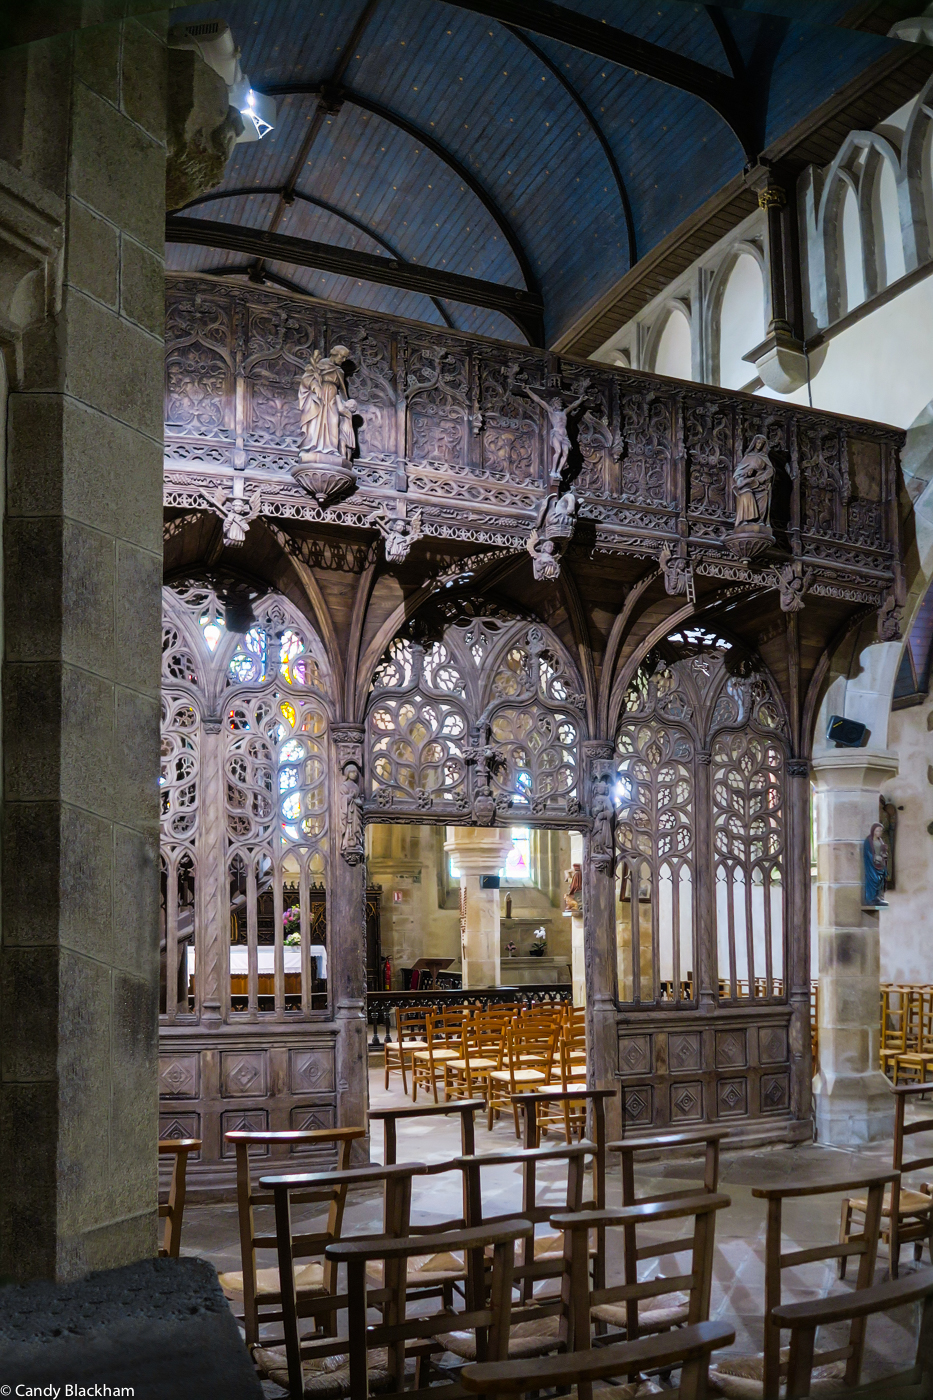 The Rood Screen in the Church of Notre Dame of Lambader